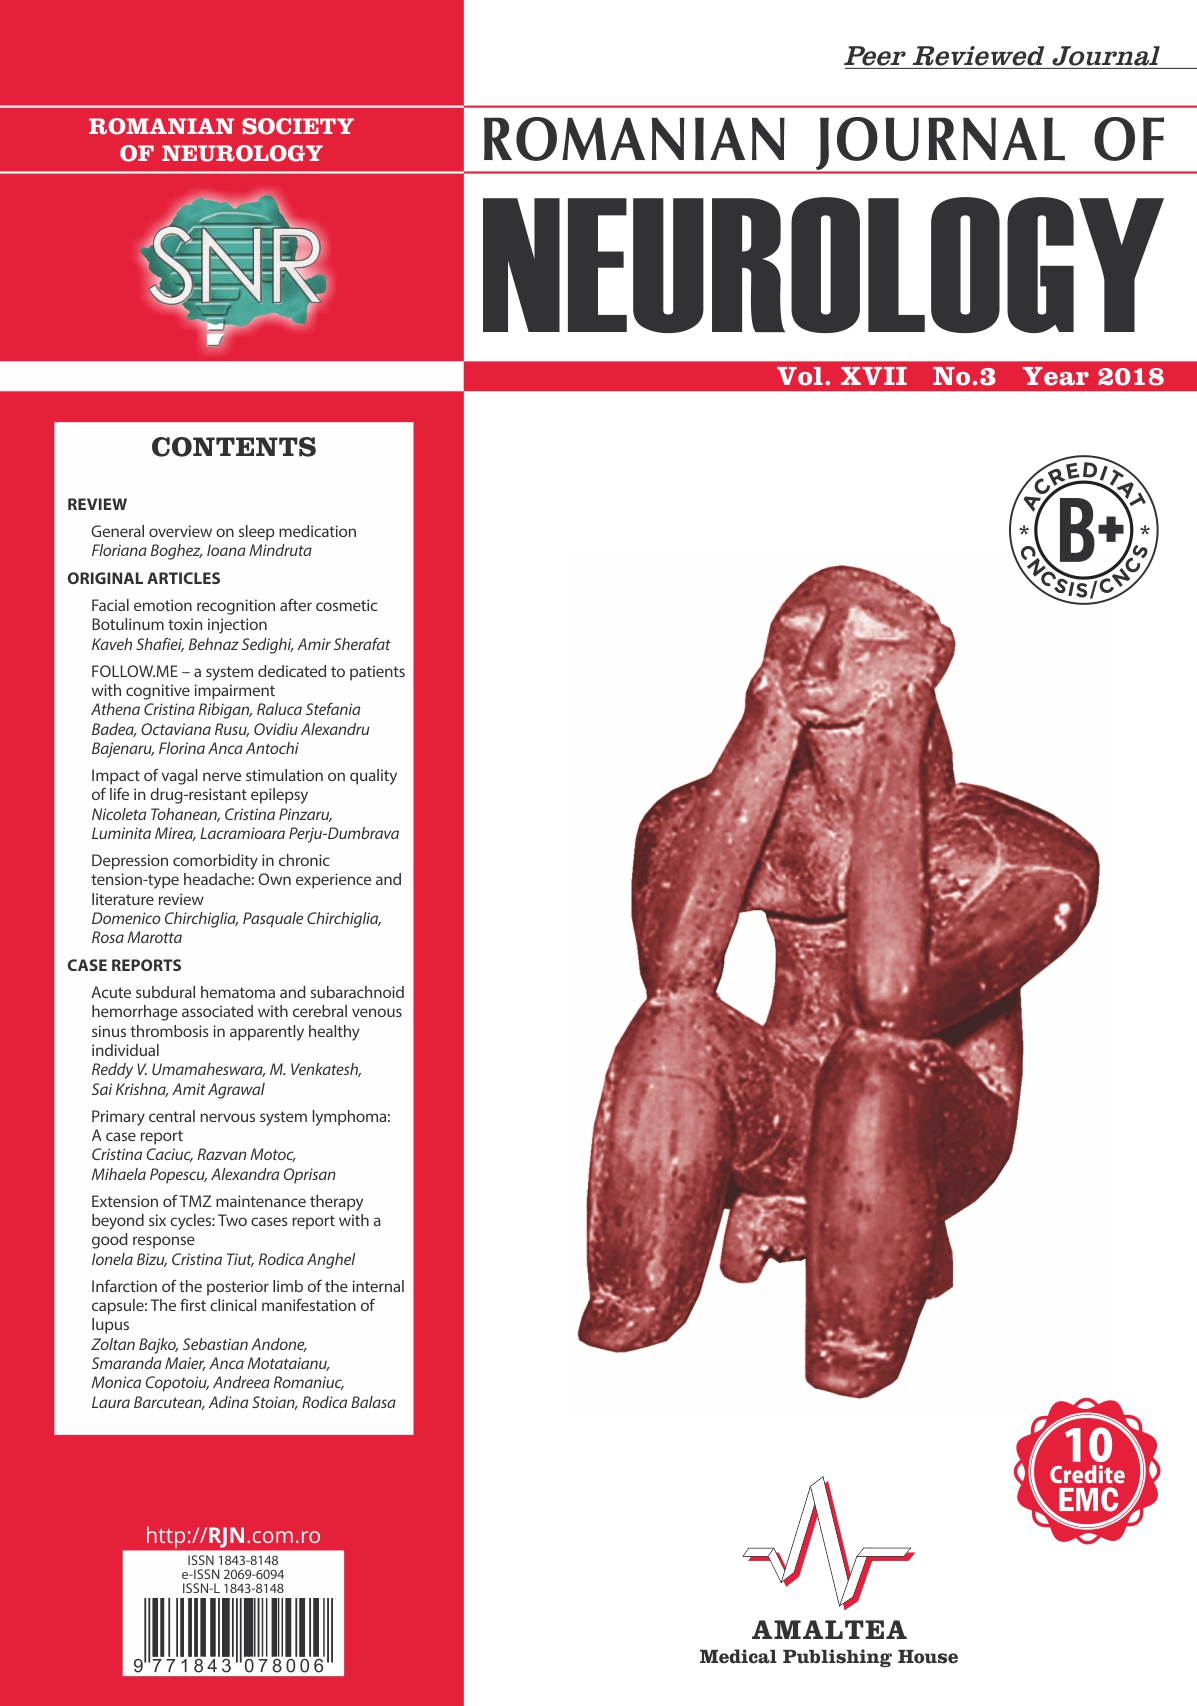 Romanian Journal of Neurology, Volume XVII, No. 3, 2018